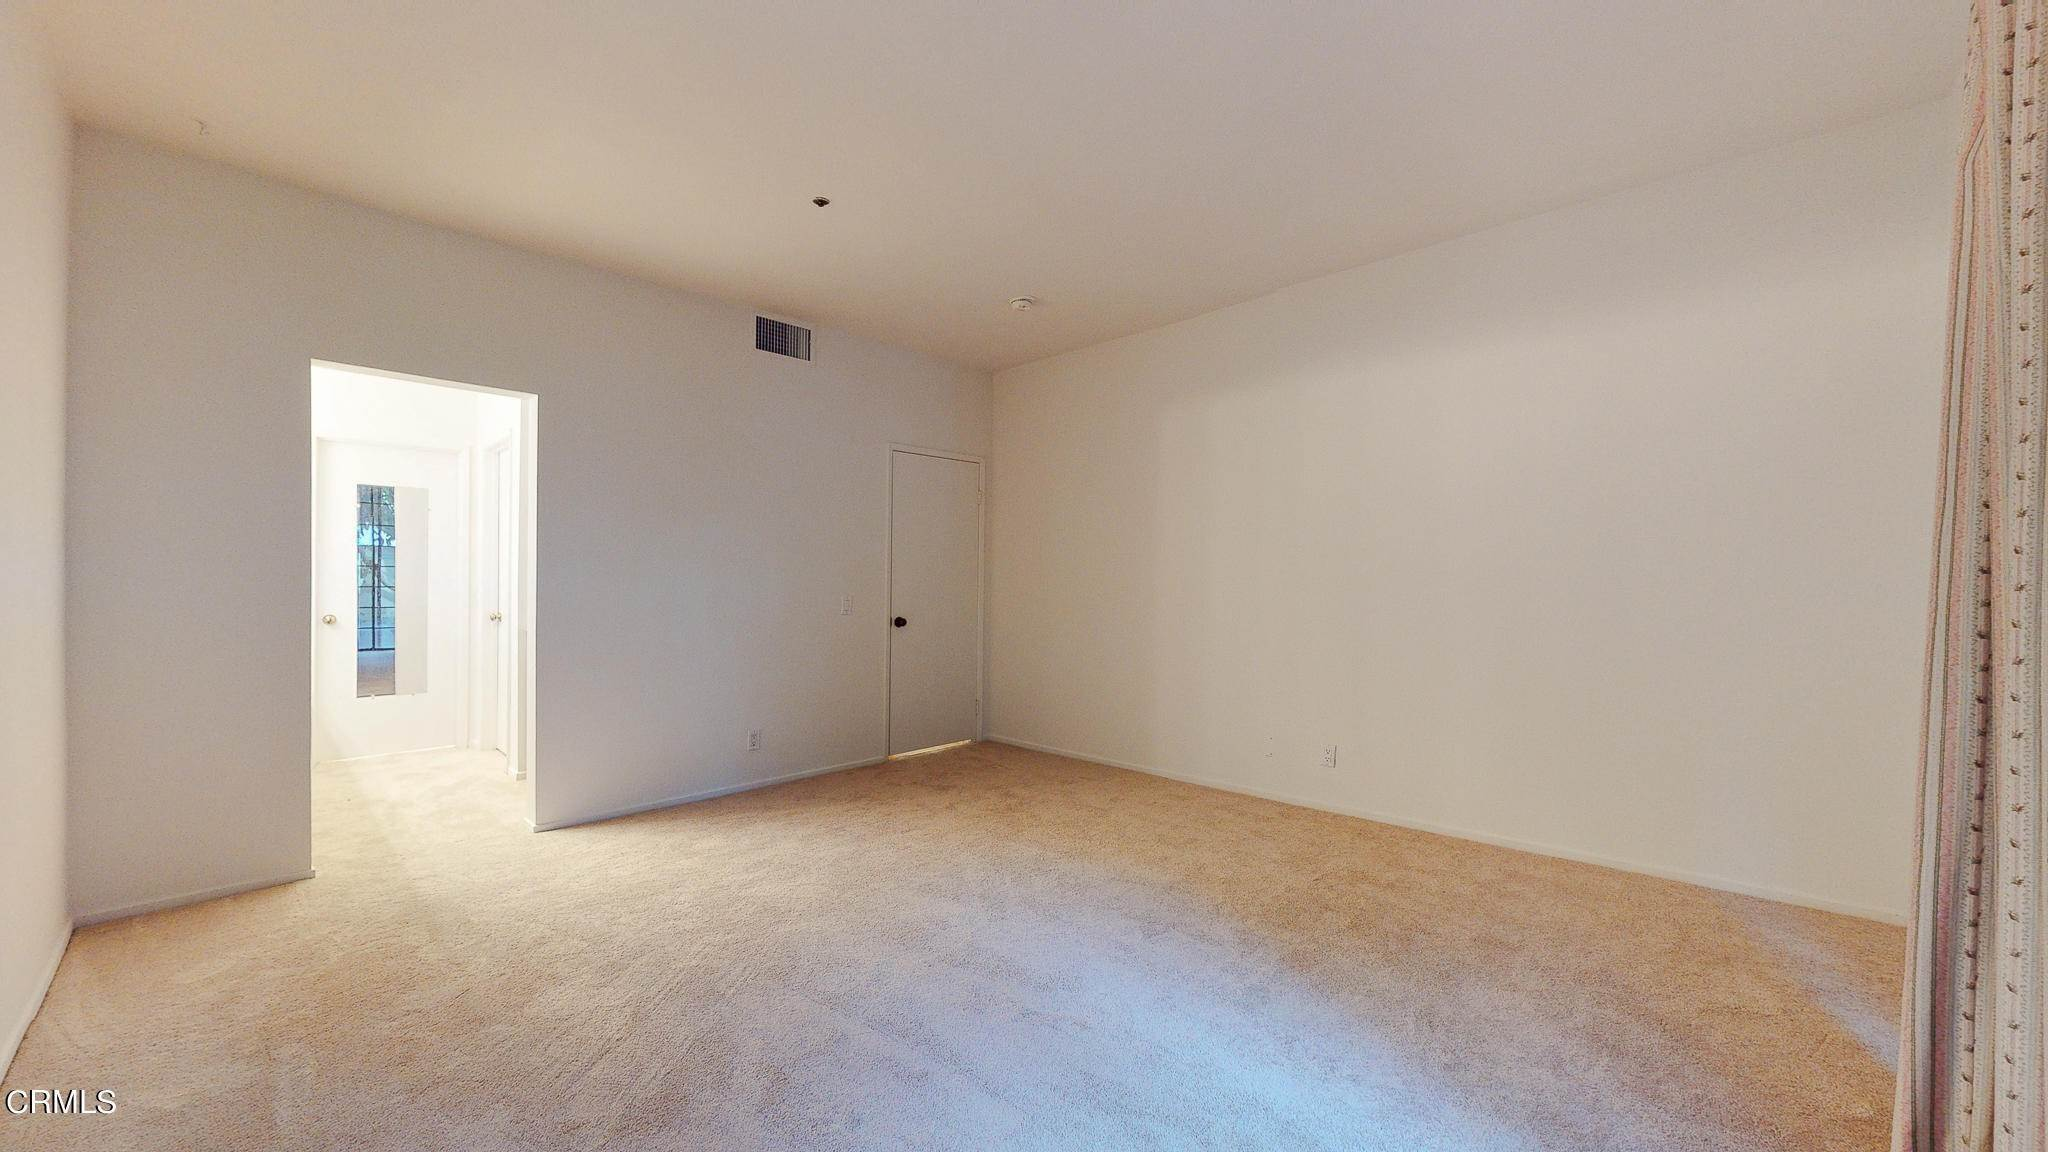 18. Condominiums for Sale at 235 South Holliston Avenue #113 235 South Holliston Avenue Pasadena, California 91106 United States